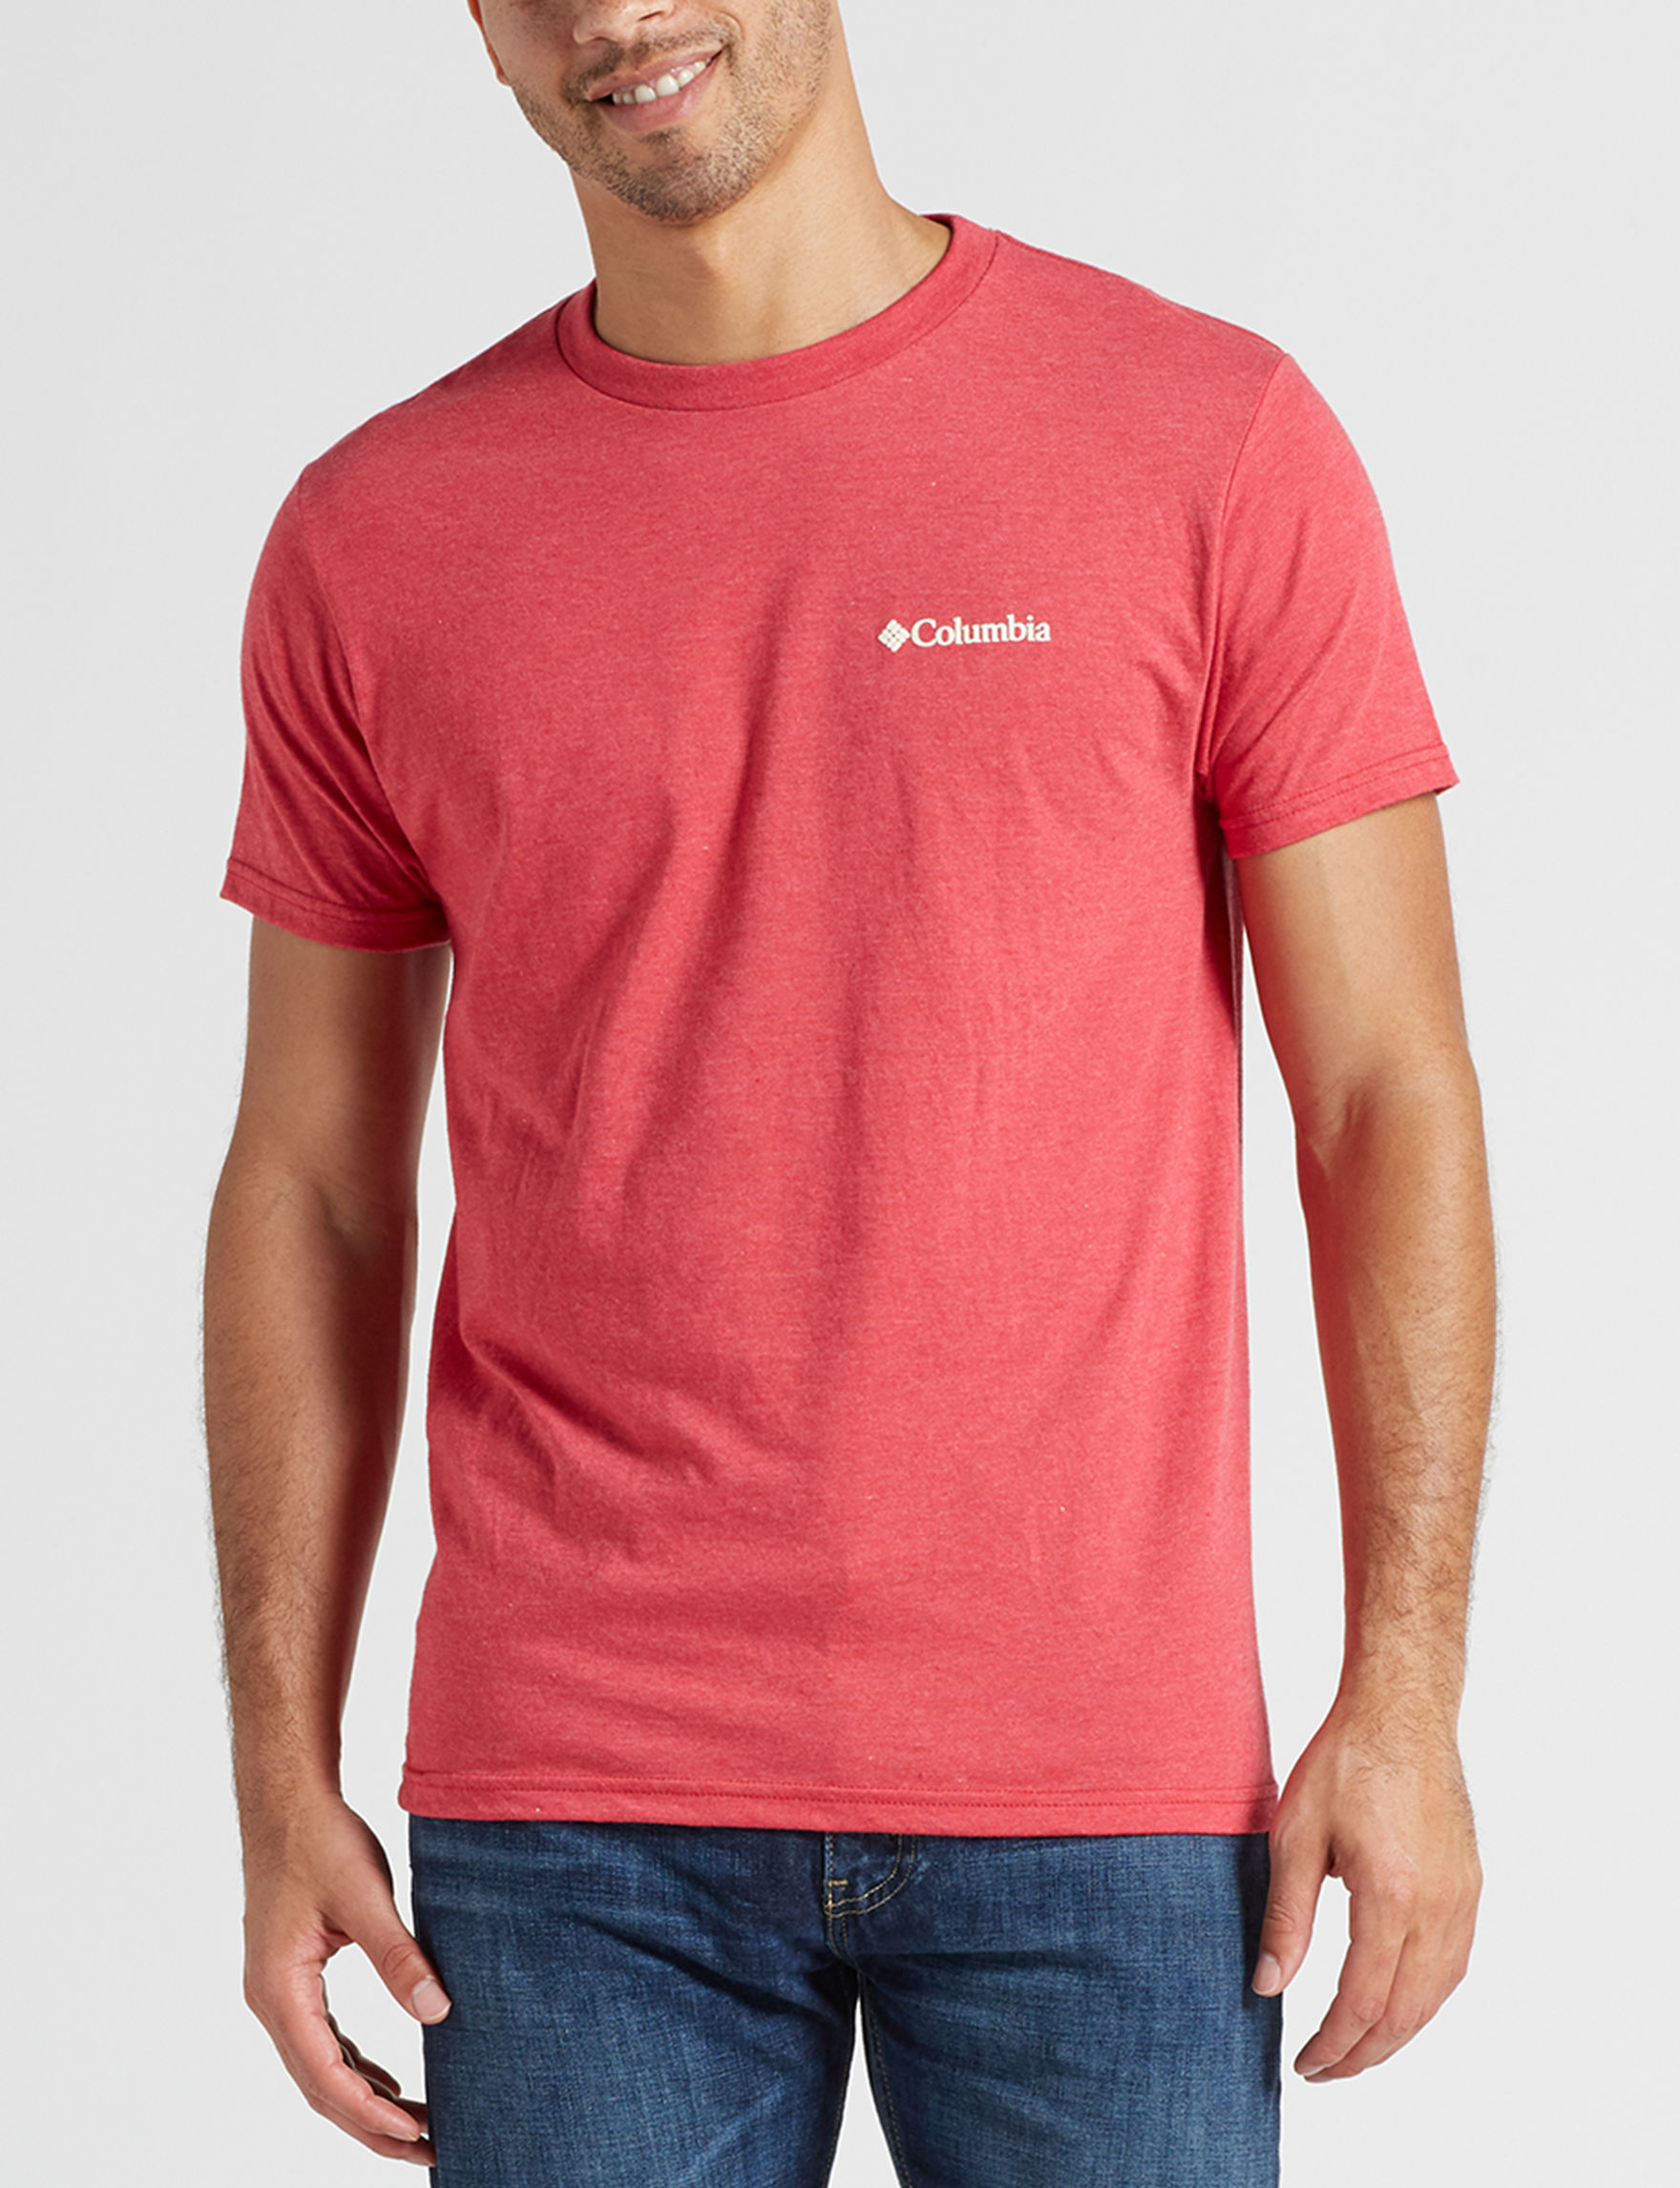 Columbia Lily Red Heather Tees & Tanks